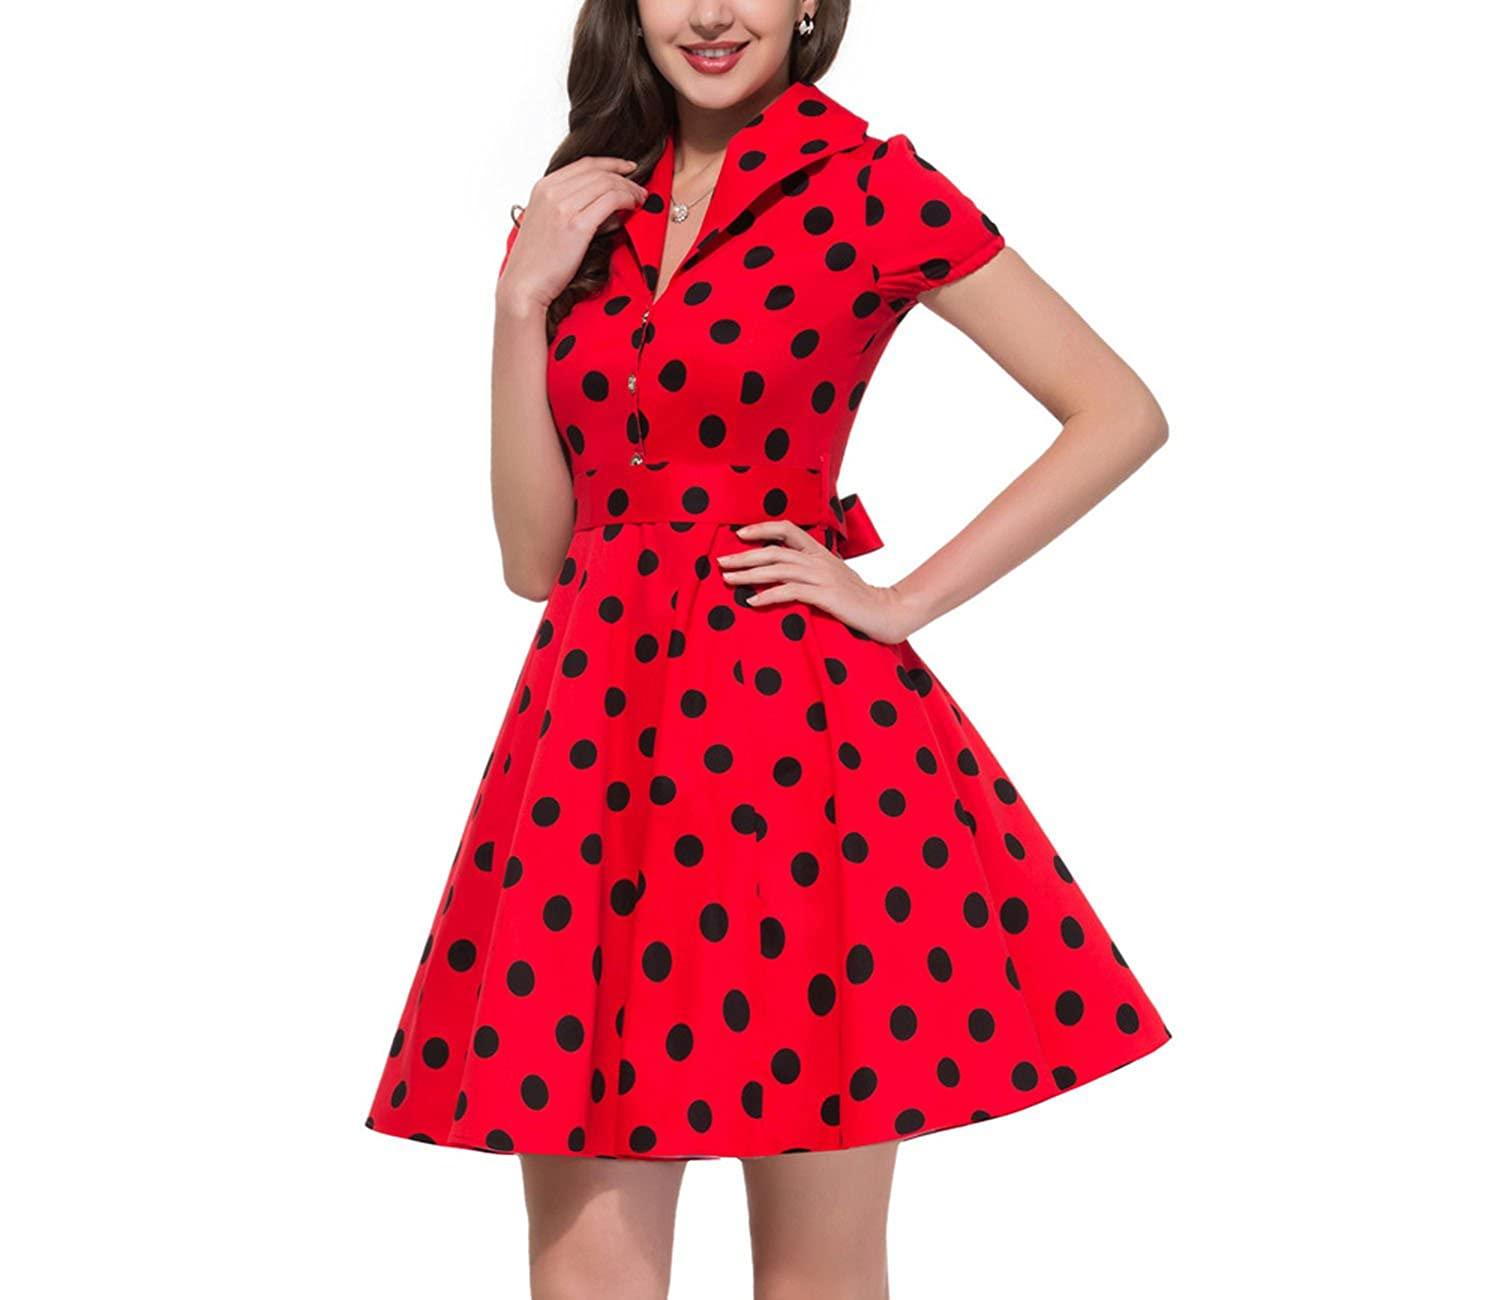 Big Swing Vestidos Retro Robe Casual Prom Rockabilly Party Dress 50s 60s Pinup Vintage Dresses at Amazon Womens Clothing store: